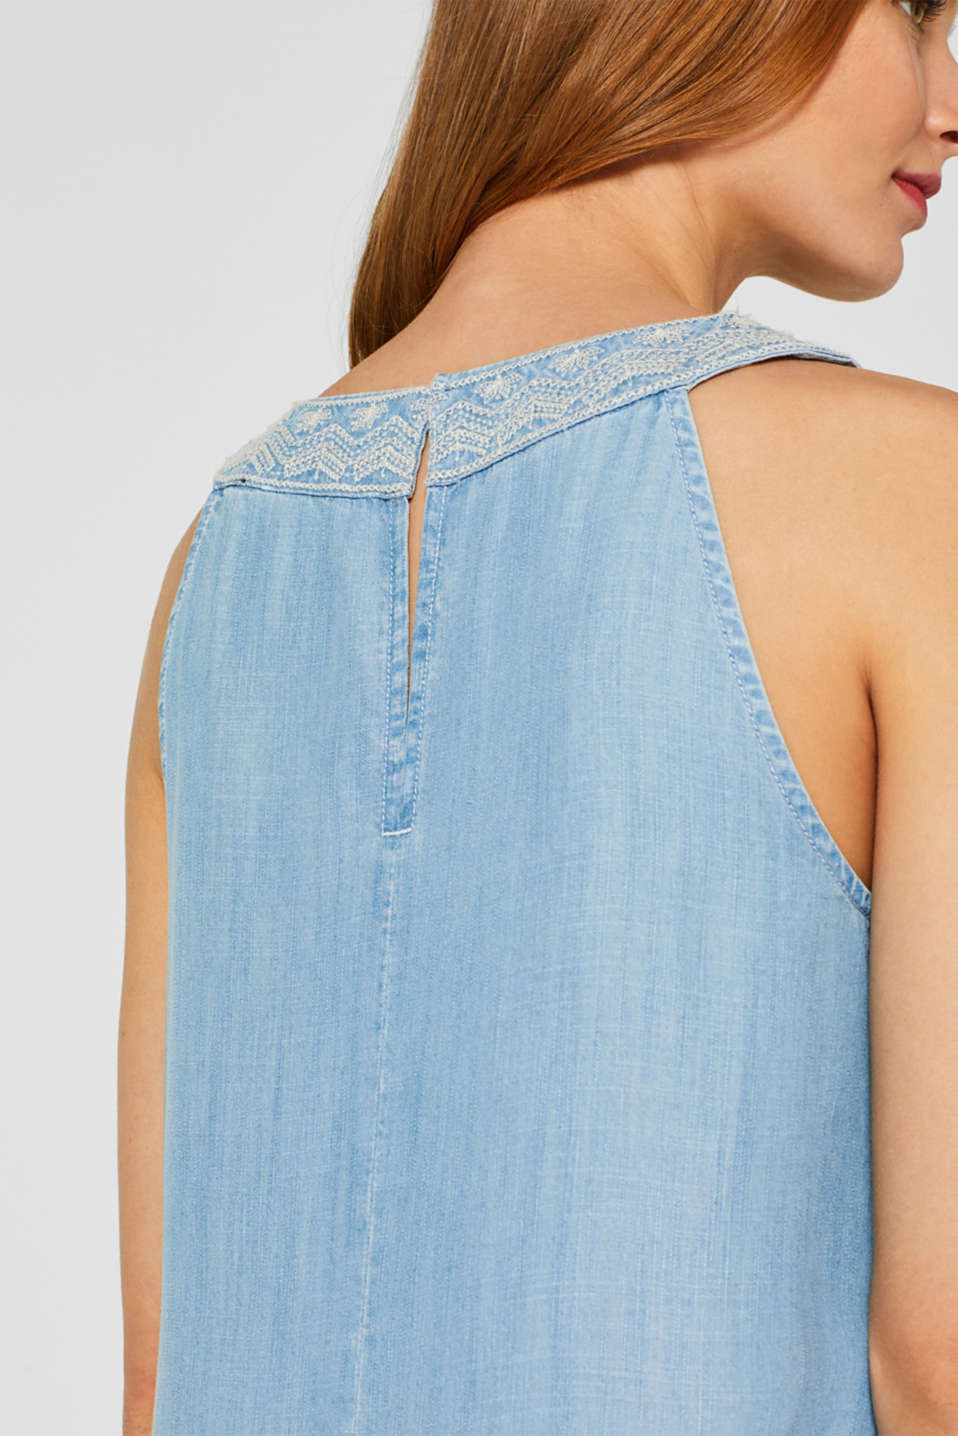 Embroidered dress made of 100% lyocell, BLUE LIGHT WASH, detail image number 6